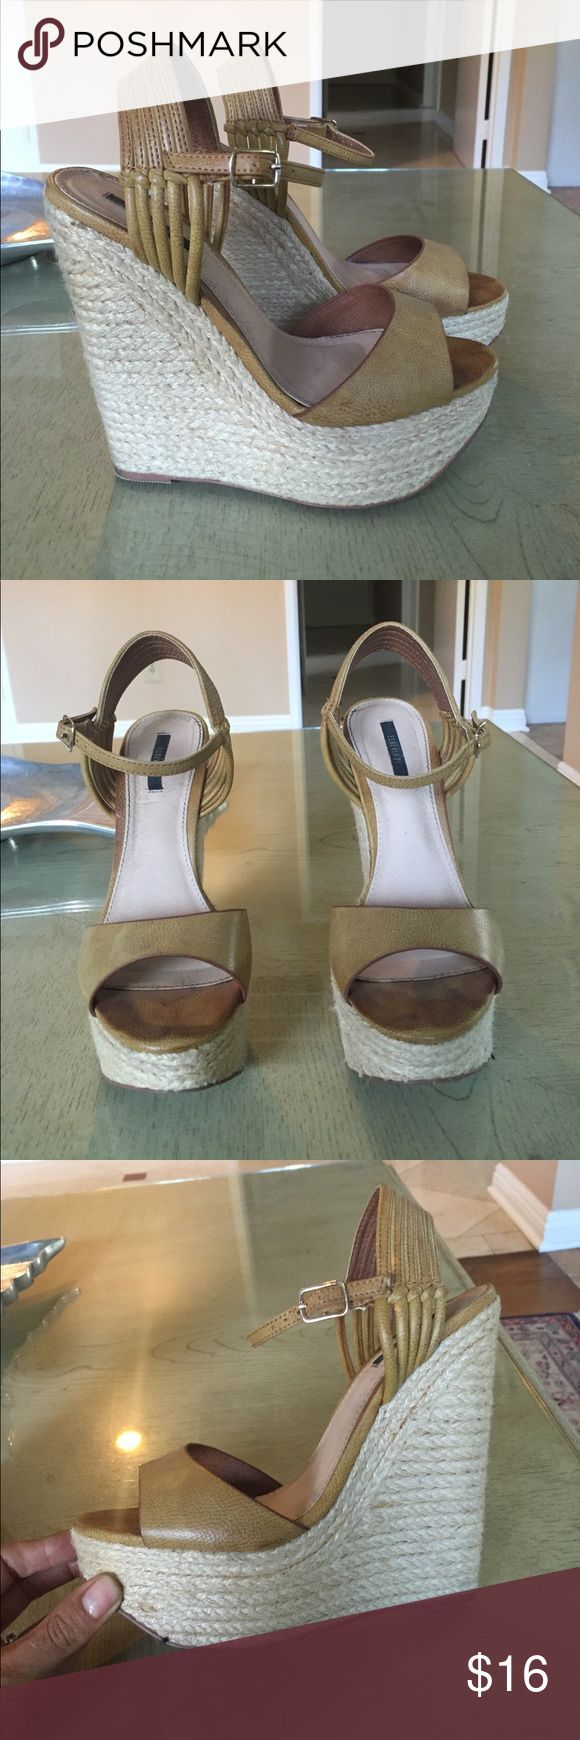 Beige espadrille wedges Great condition. About 5.5 inch heel with about 1.5 inch platform Shoes